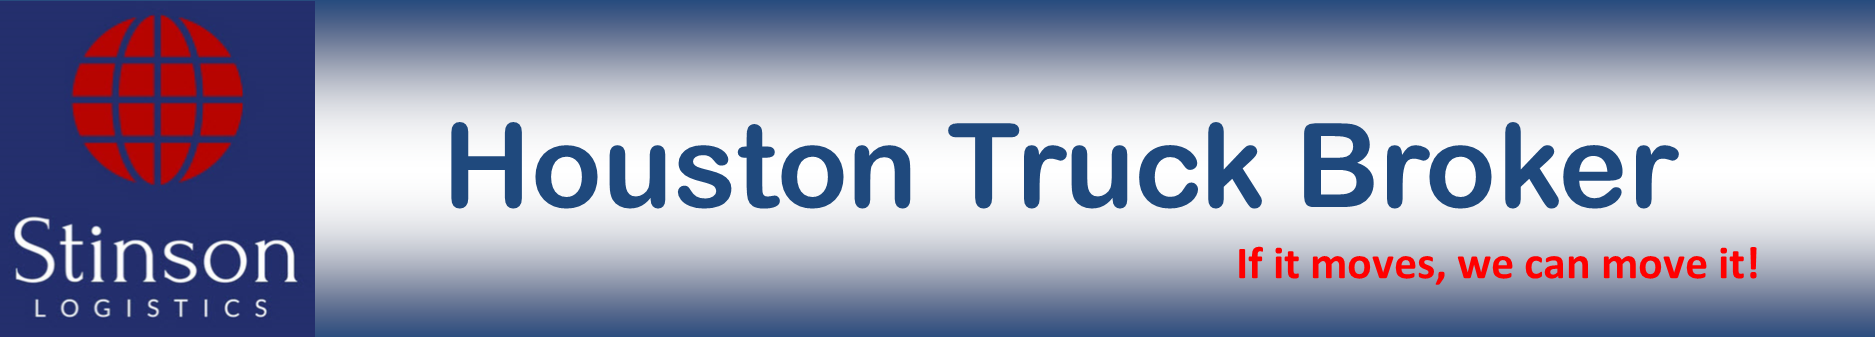 Houston Truck Broker - Stinson Logistics, LLC - Domestic Trucking - Freight Broker - Shipping company - Freight Company